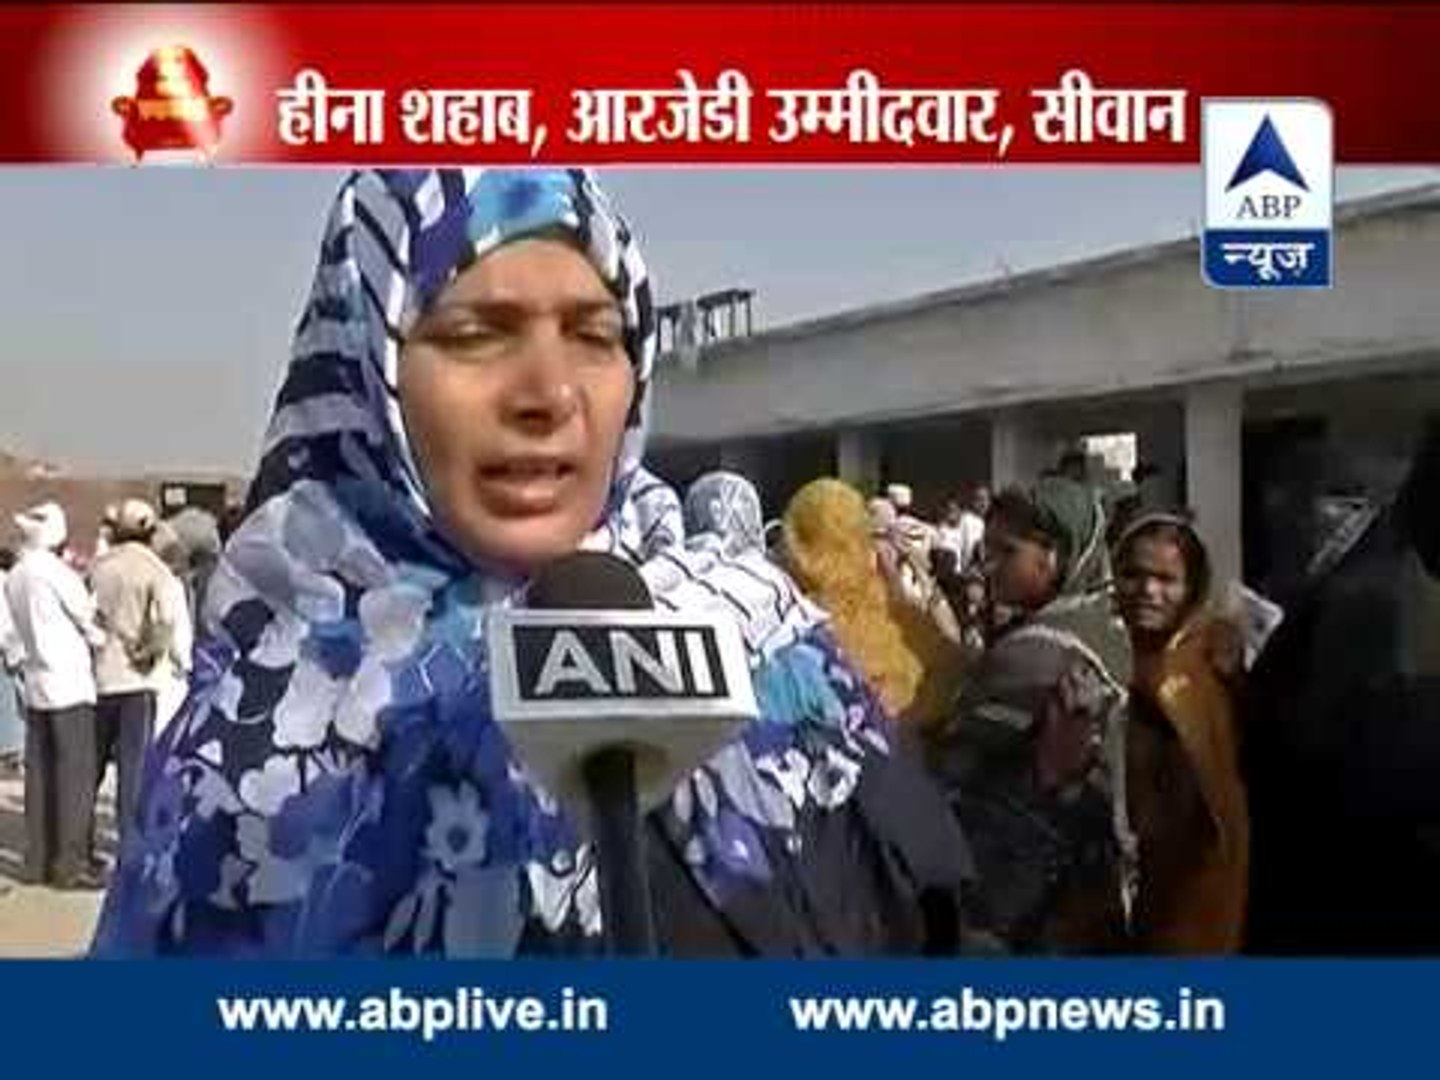 Heena Shahab, RJD candidate in Siwan, casts her vote